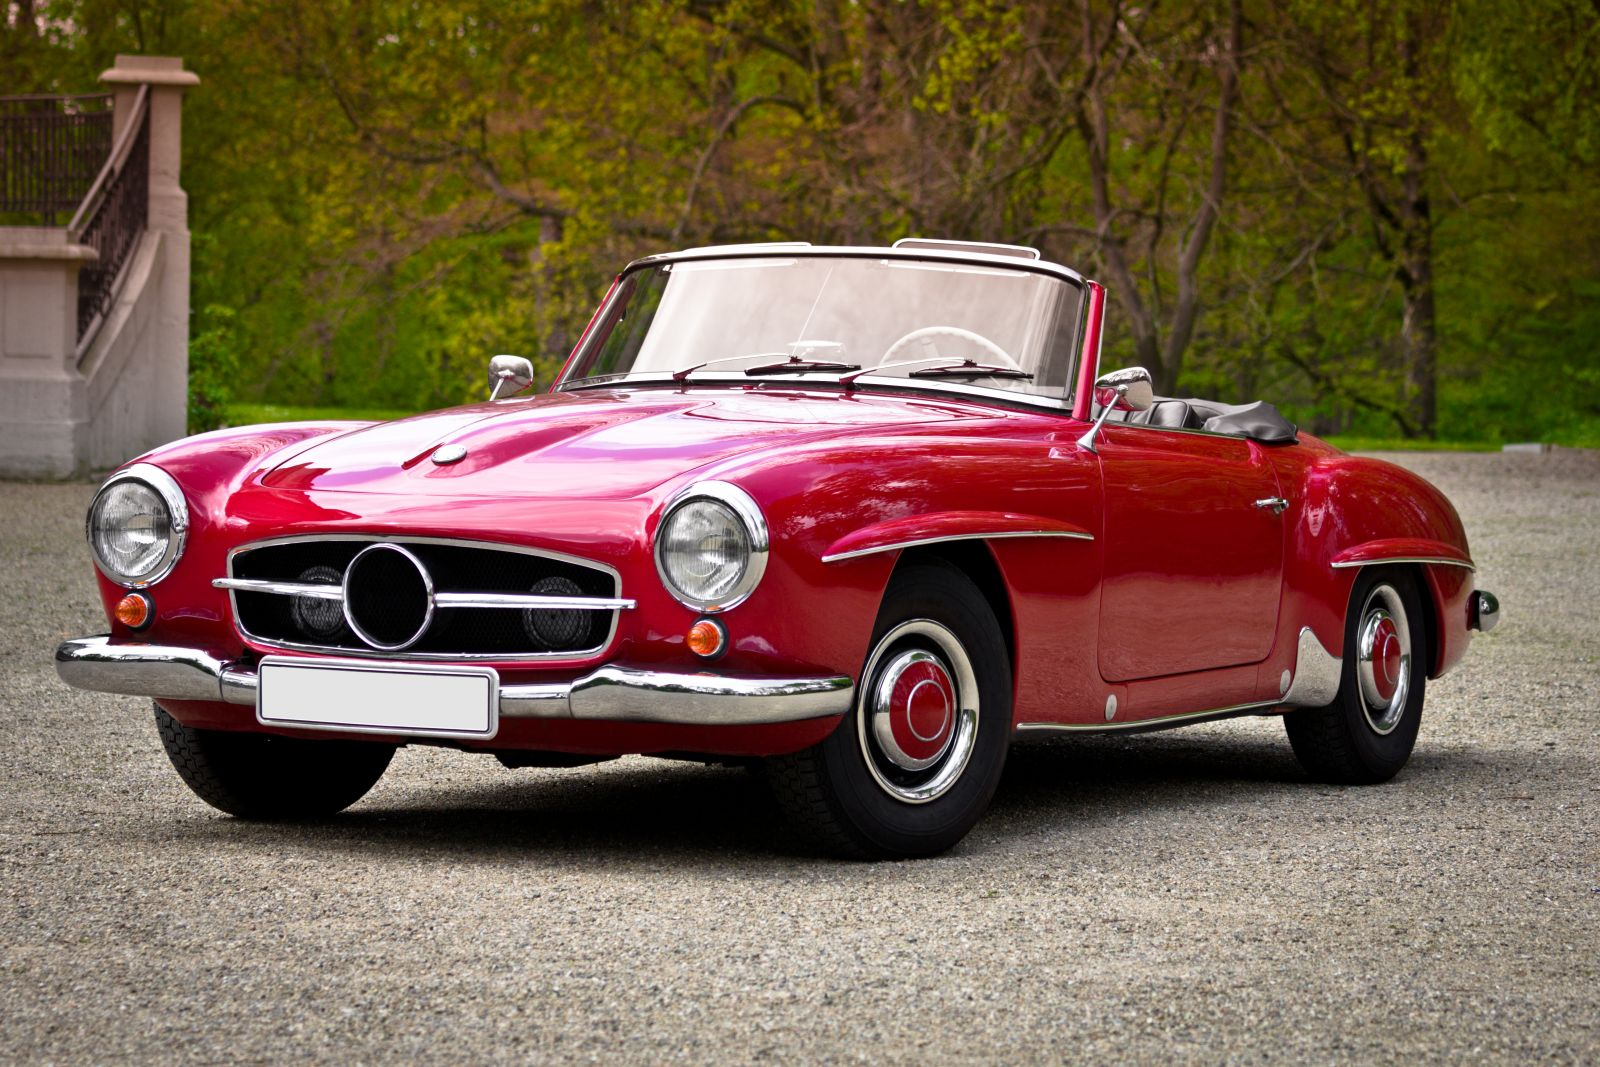 Colorful Types Of Old Cars Images - Classic Cars Ideas - boiq.info